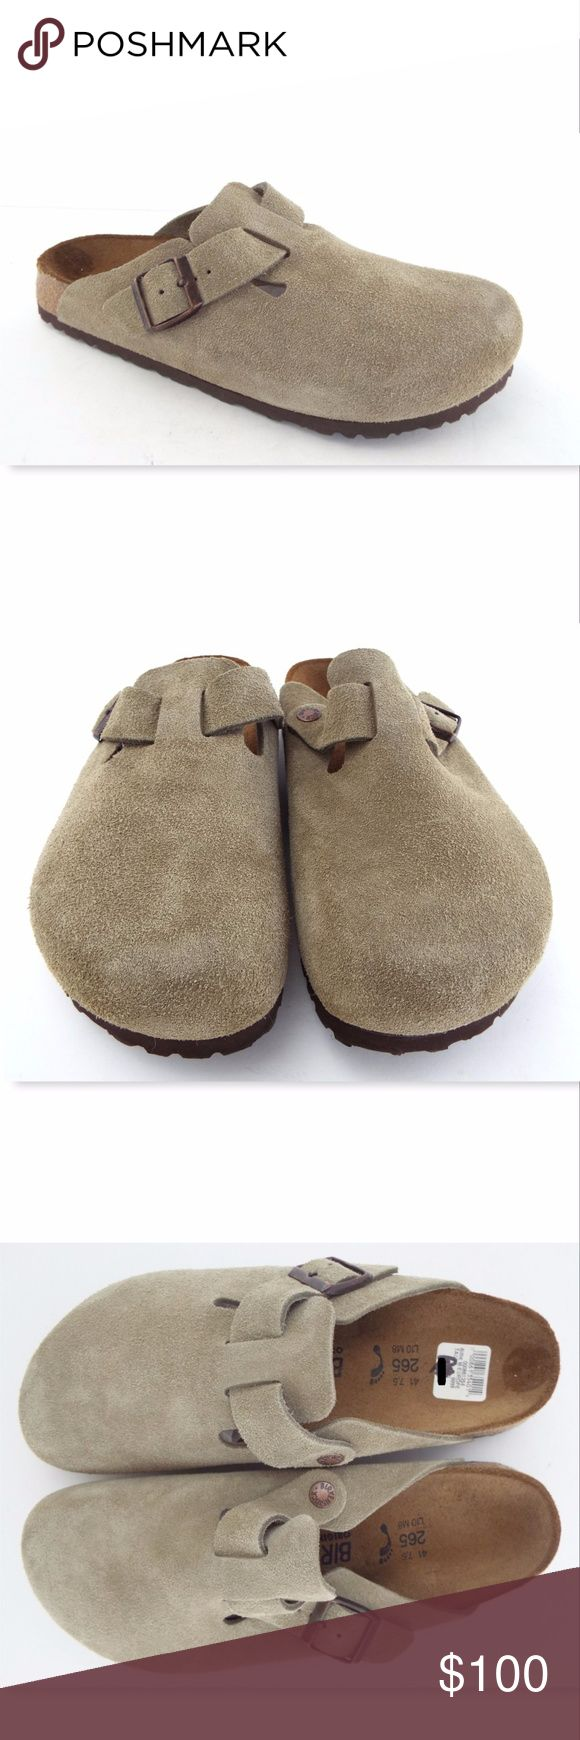 New BIRKENSTOCK BIRKO Suede Leather Mule Sandal 41 BIRKENSTOCK Birko Premium 100% Authentic! Taupe Green Suede Mules  Size 41 or Women's 10 Medium or Men's 8 New without box. All actual photos of the item. Birkenstock Shoes Sandals & Flip-Flops